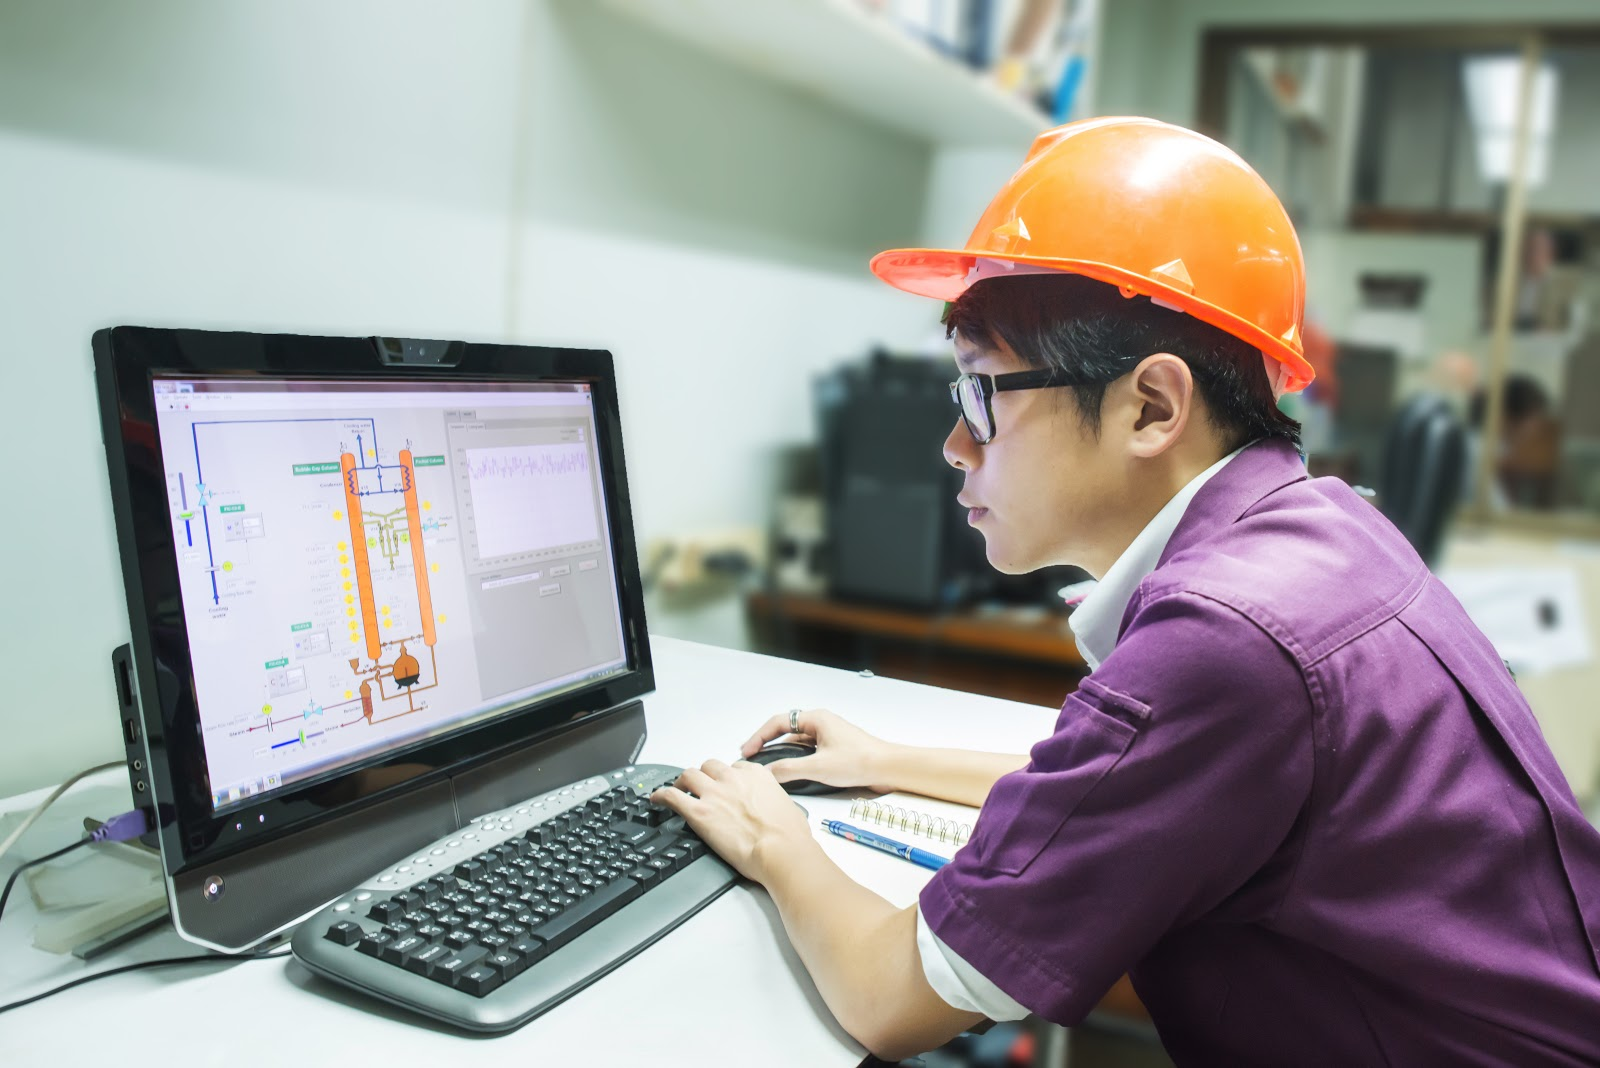 engineering internships: Engineering student reviewing a project on his computer